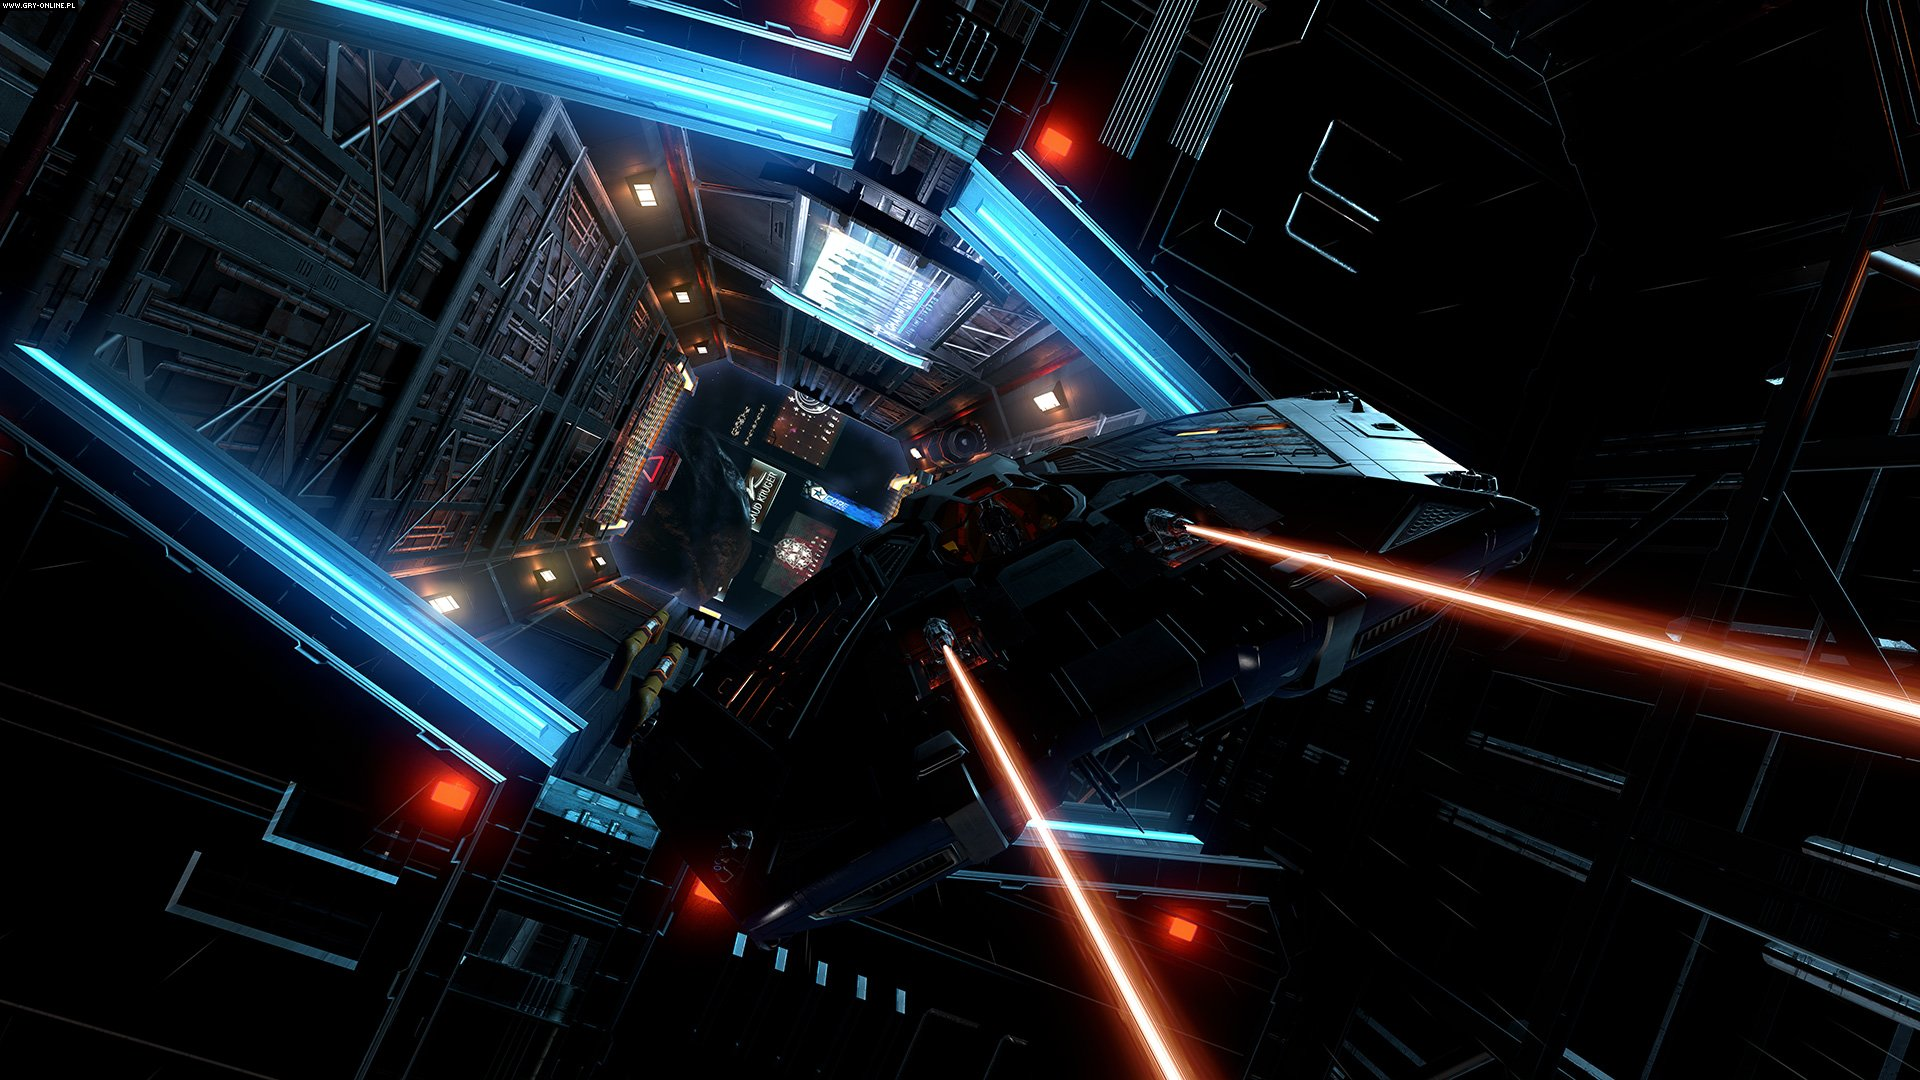 Elite: Dangerous - Arena PC Gry Screen 9/15, Frontier Developments